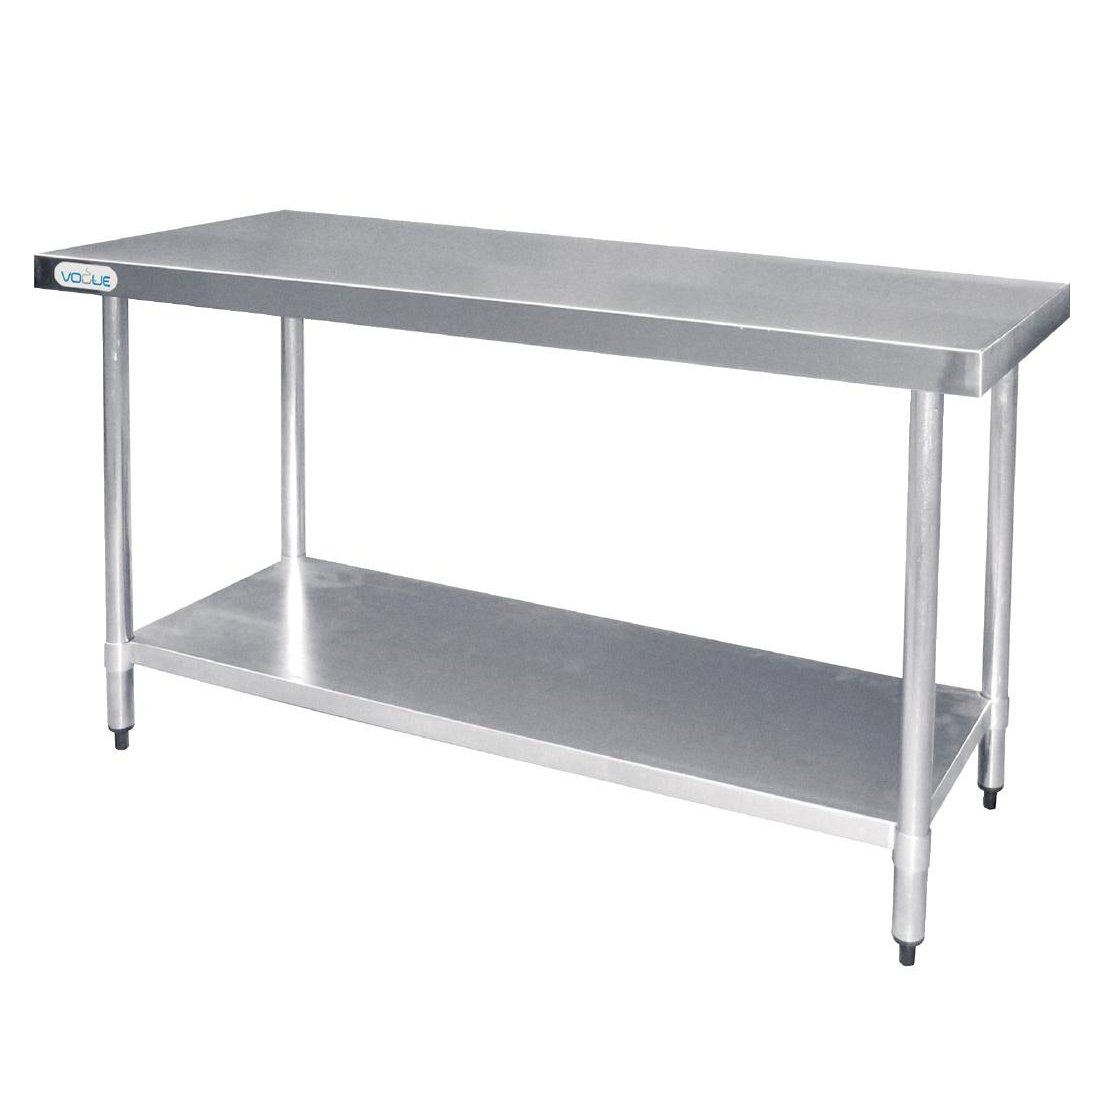 Vogue stainless steel prep table no upstand 600mm commercial kitchen work bench